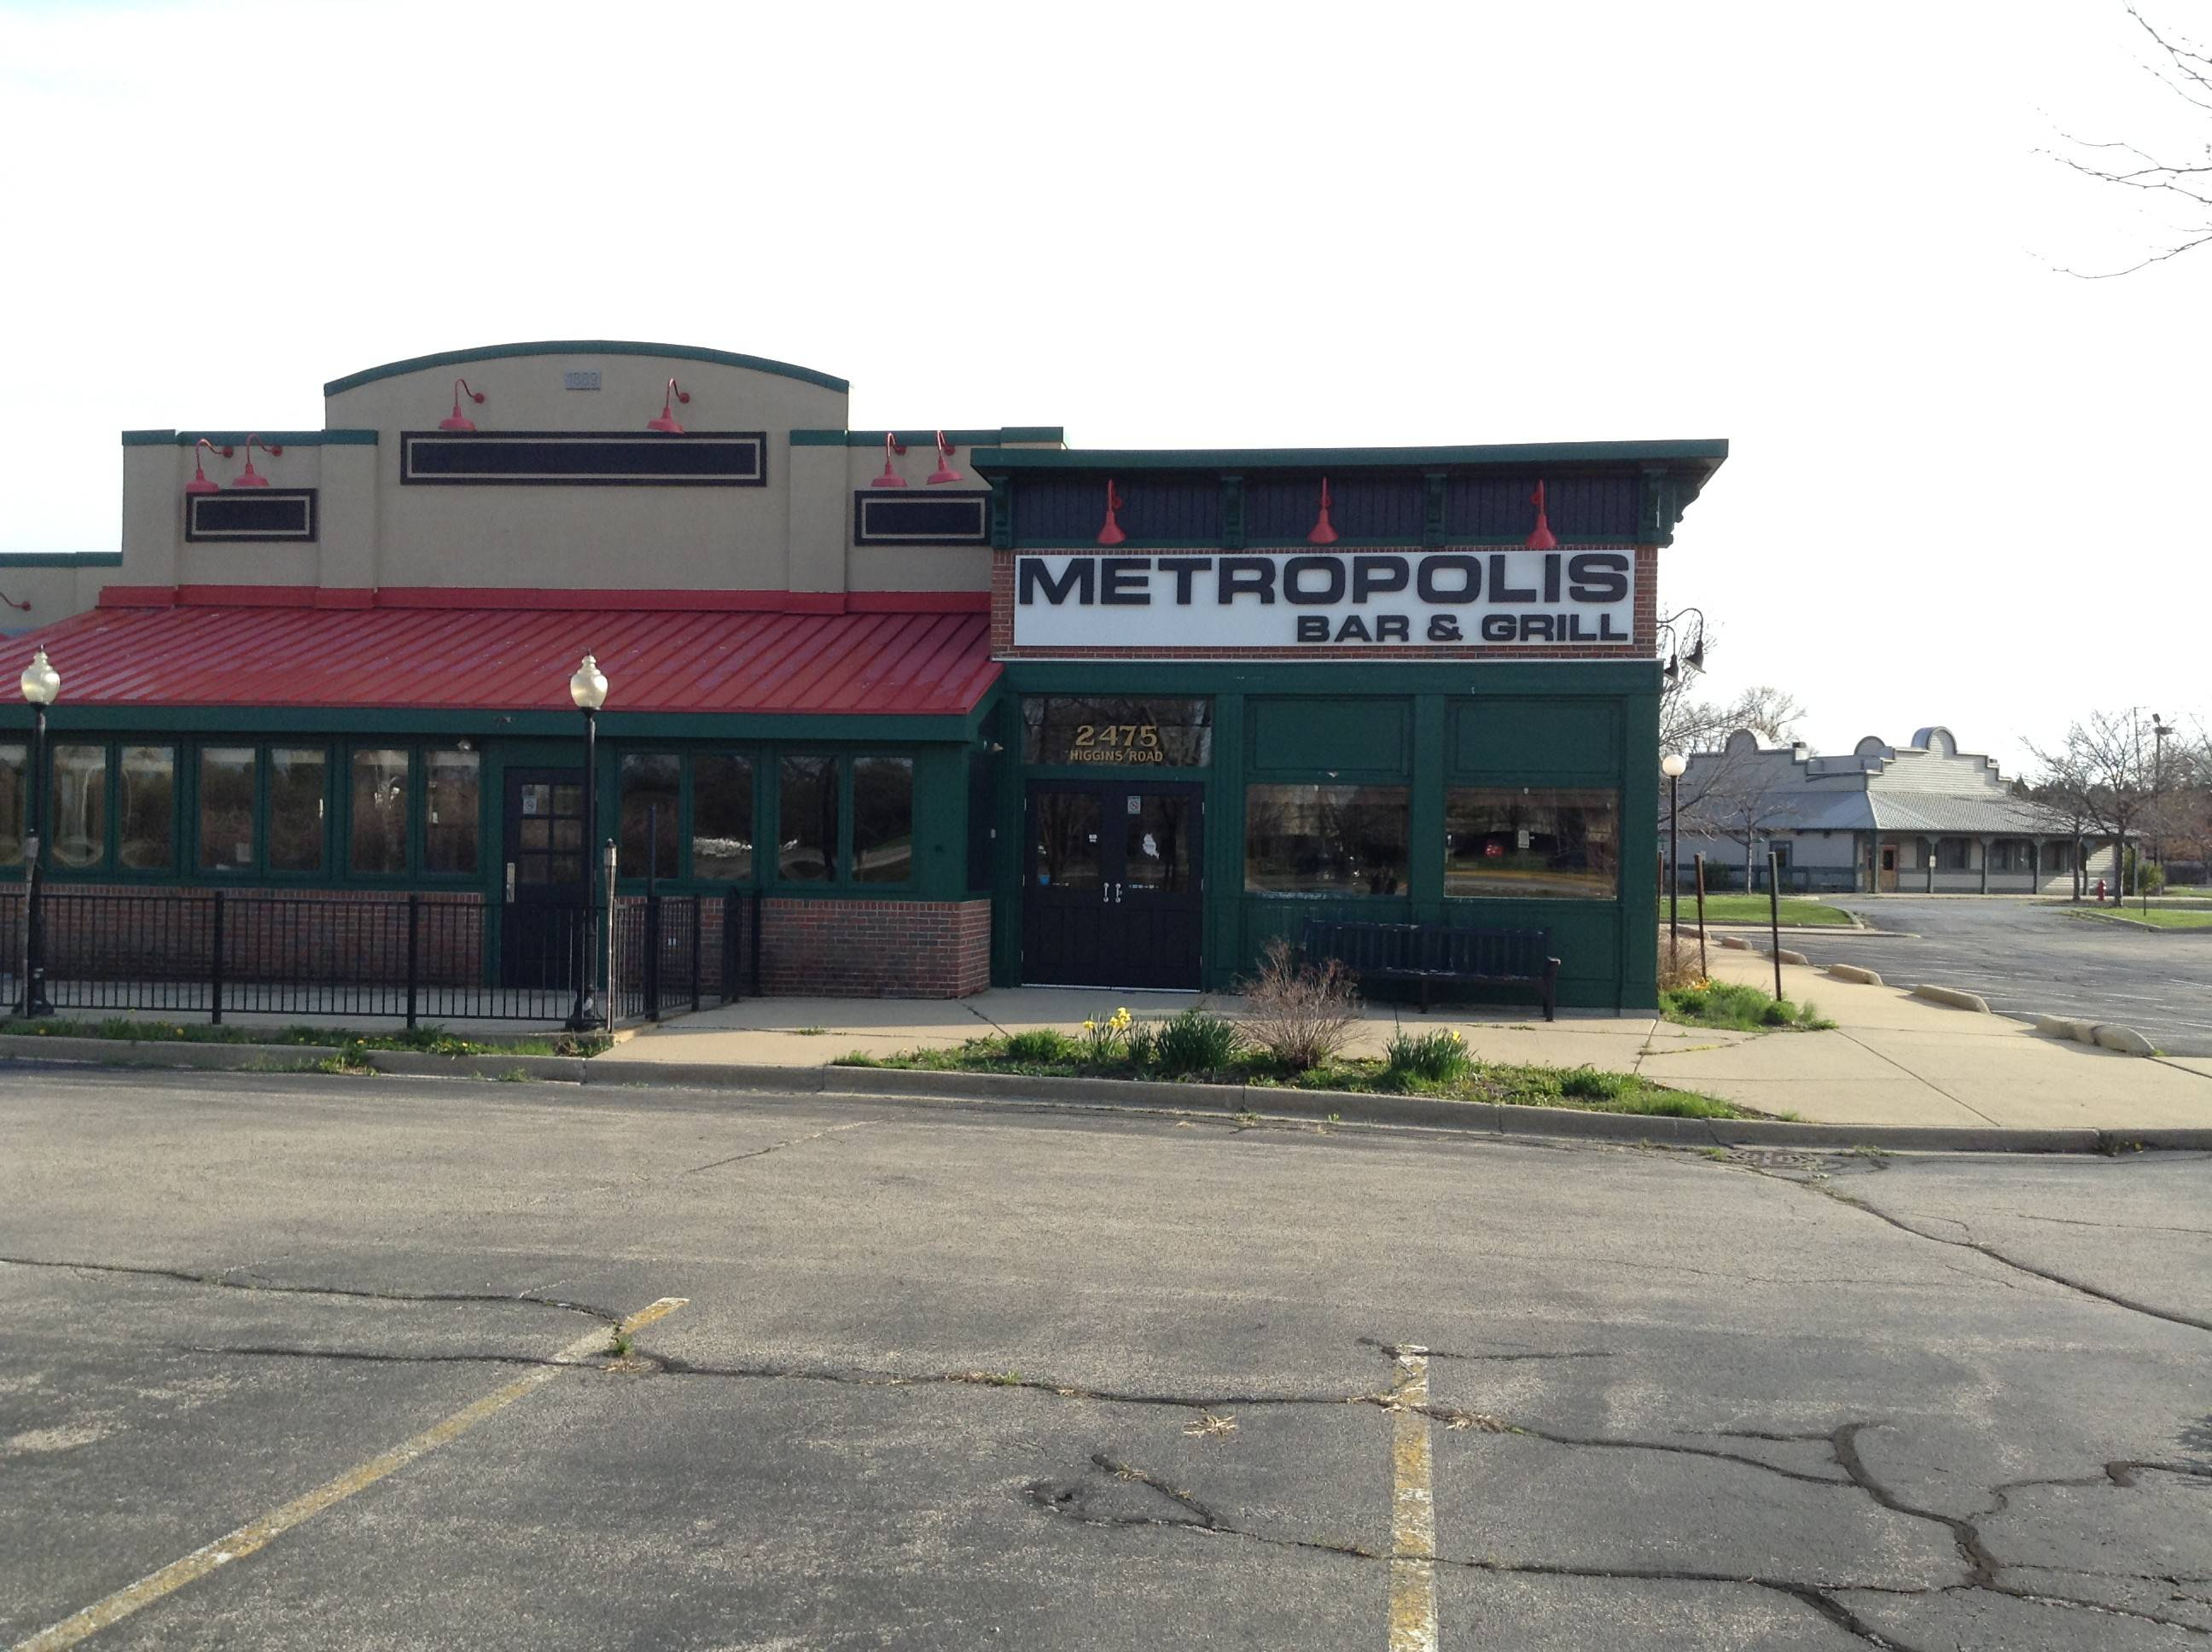 The former Metropolis Bar & Grill at the southeast corner of Higgins and Barrington roads in Hoffman Estates — with the former Lone Star in the background — will soon be replaced by new Moretti's and Whiskey River restaurants, respectively.